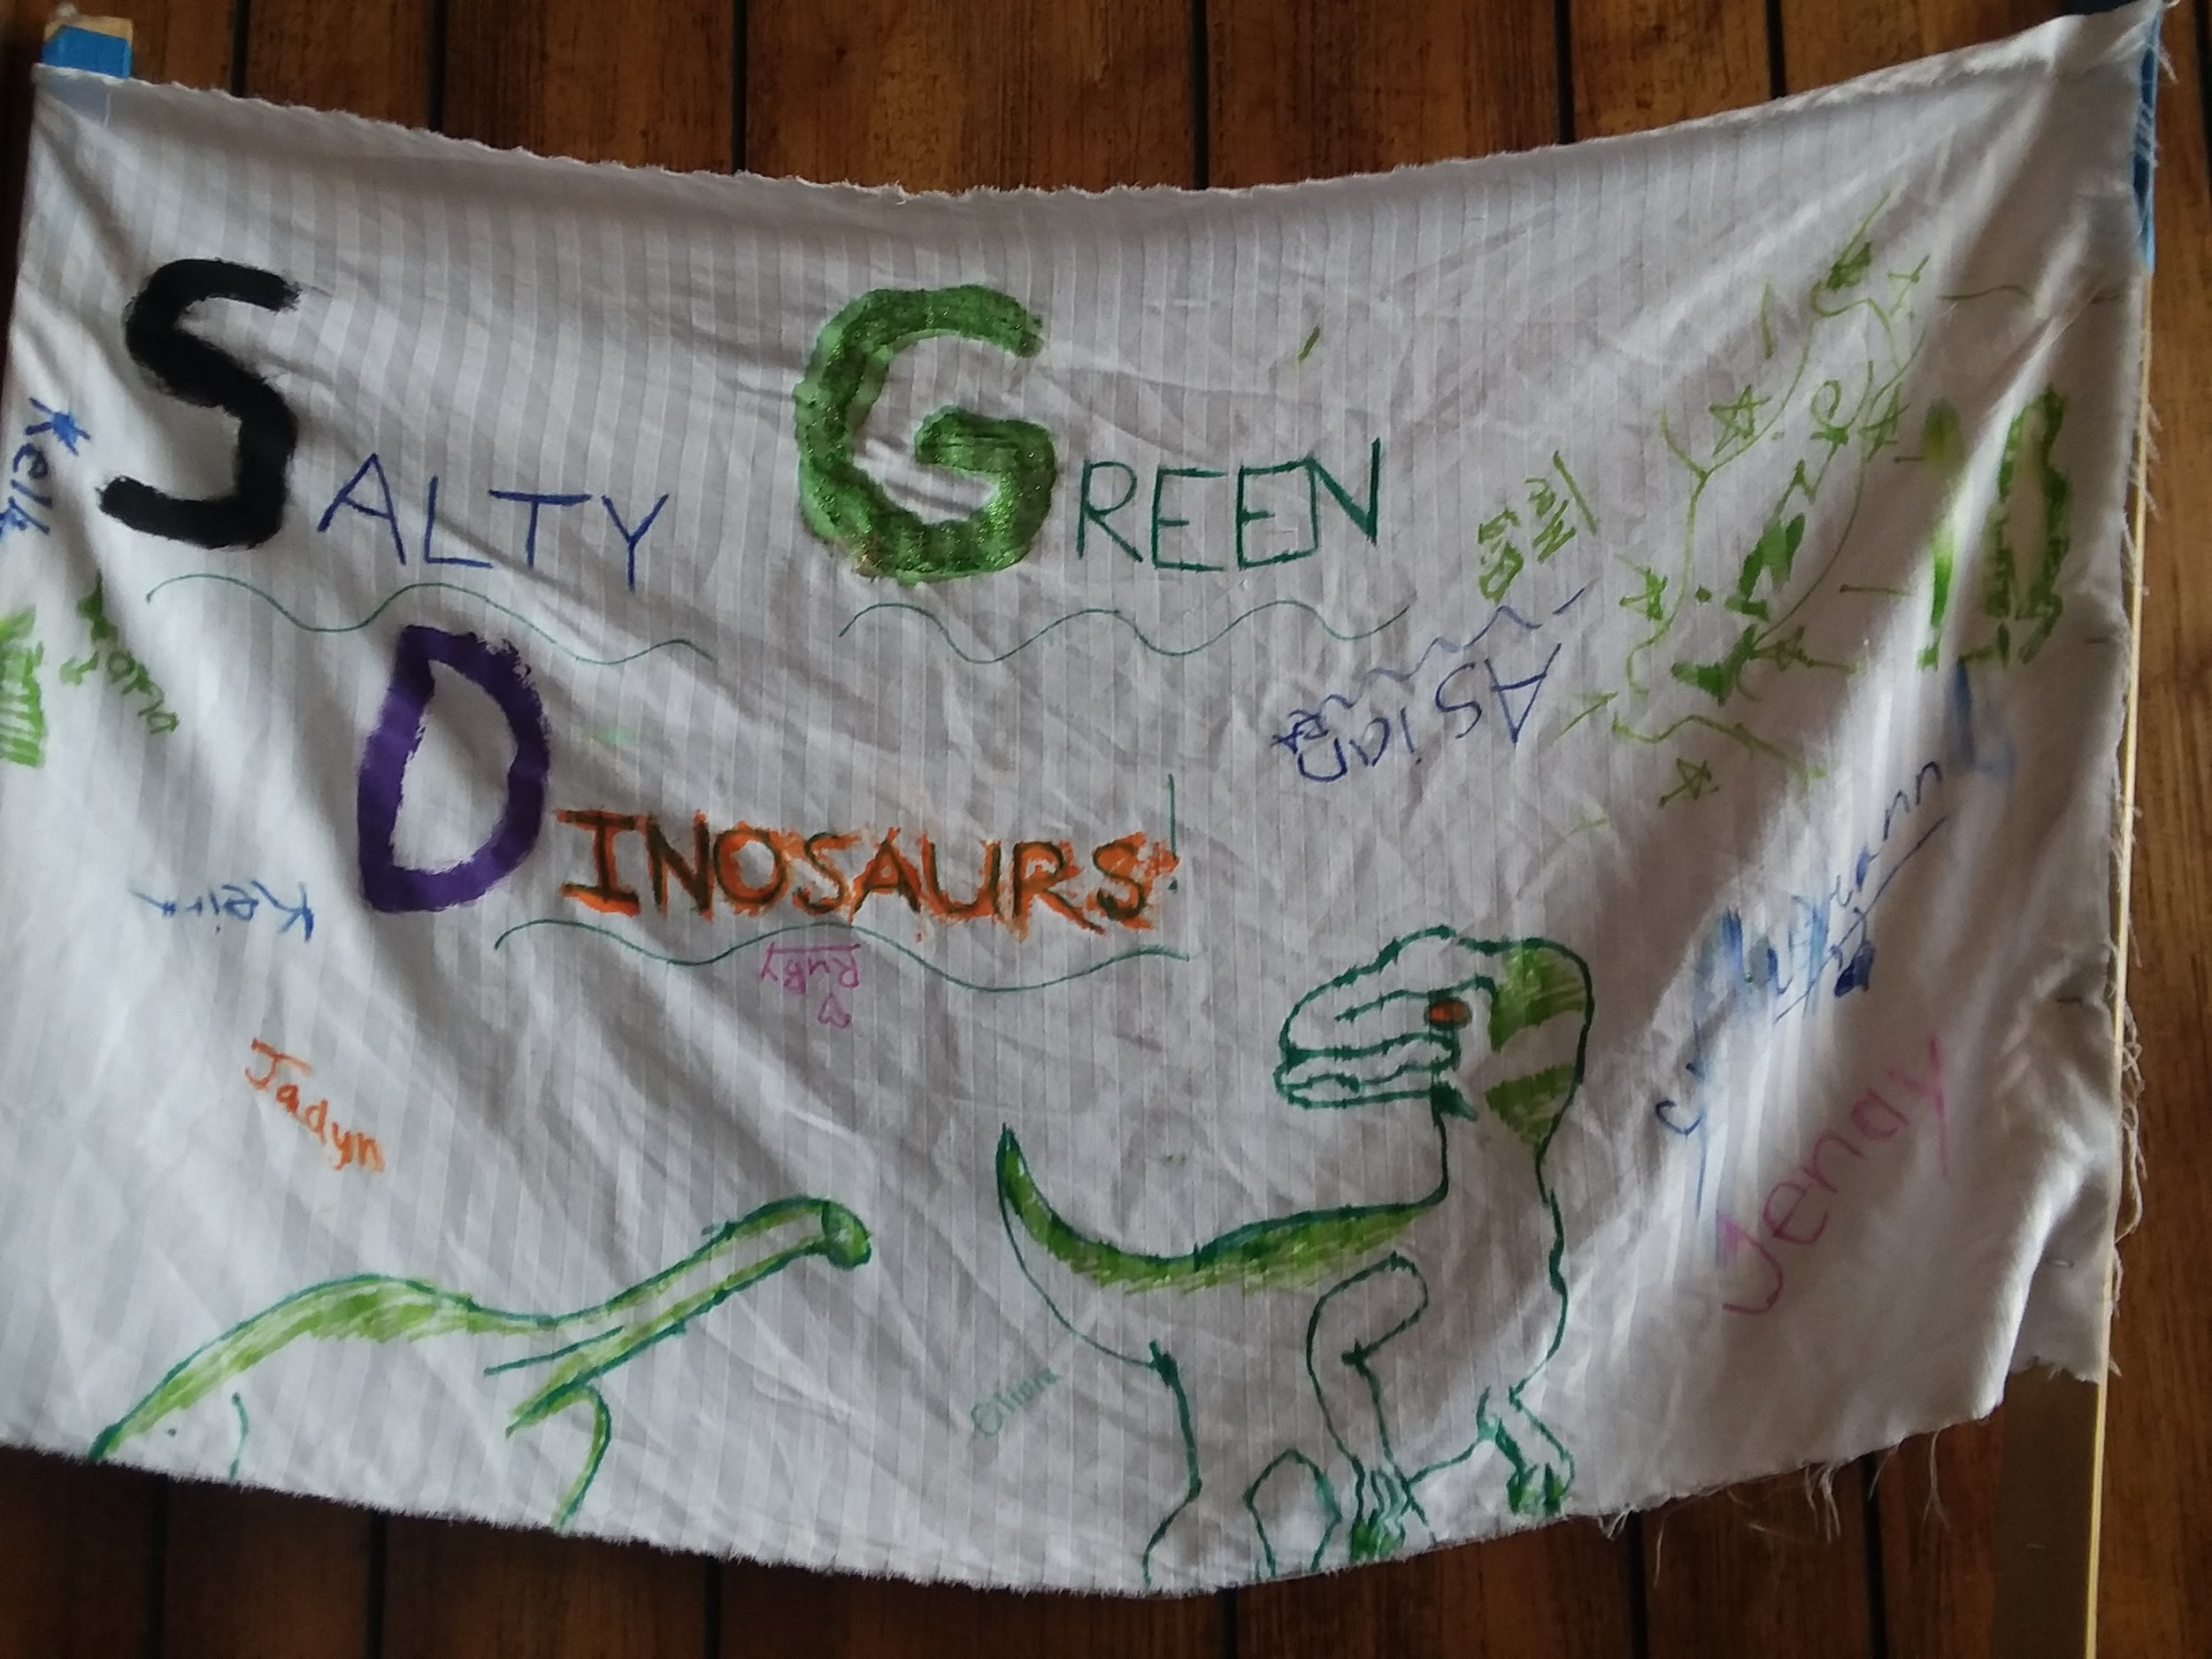 The Salty Green Dinosaurs - Lead by Jenay Zelinka and Kelly Carroll (Cabin 17) - Fourth Place!